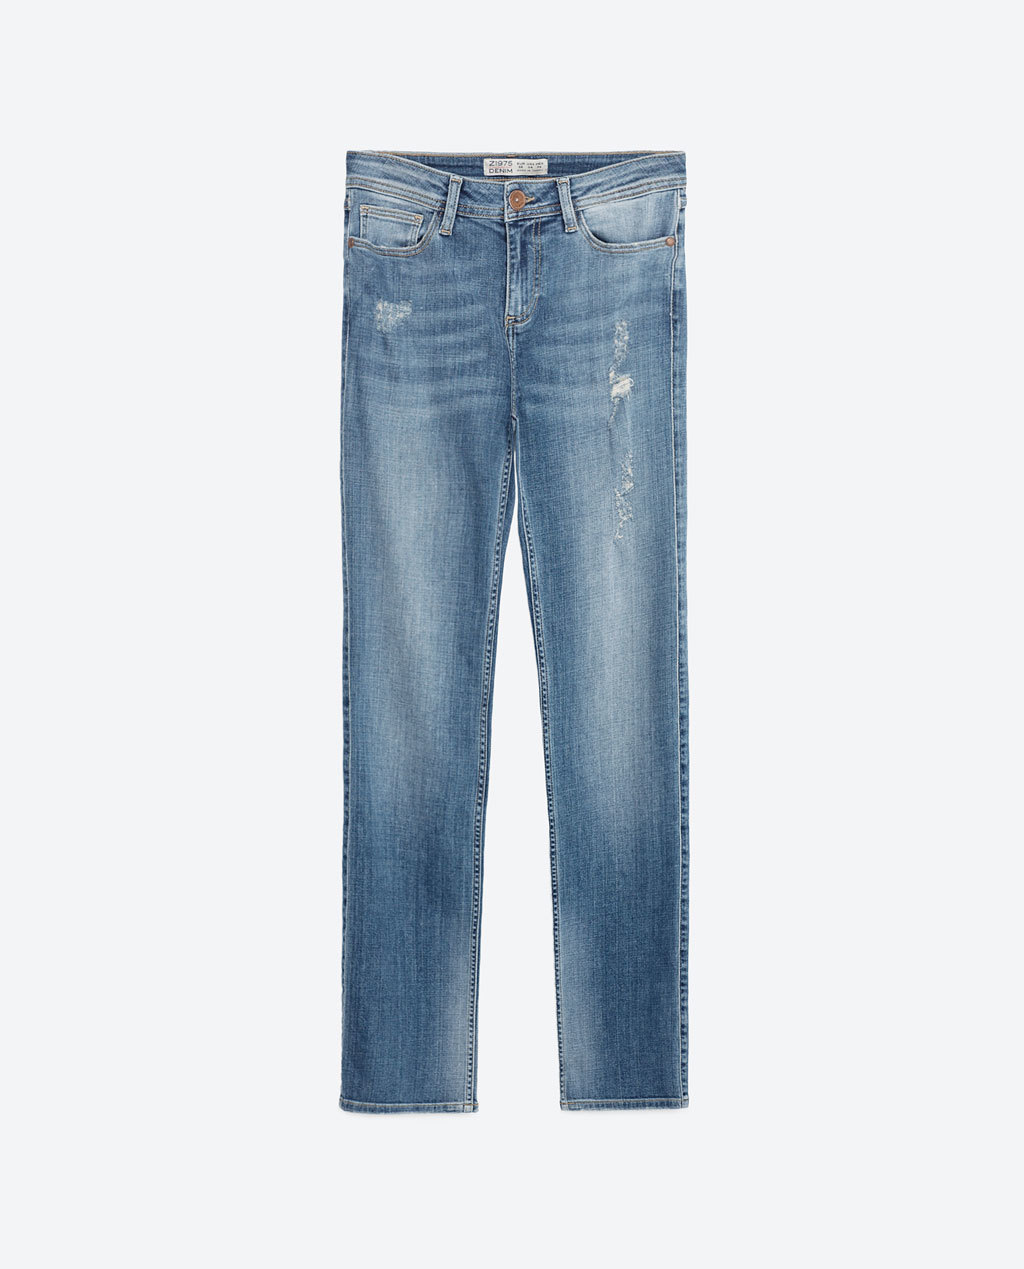 Straight Leg Mid Rise Jeans - style: straight leg; length: standard; pattern: plain; pocket detail: traditional 5 pocket; waist: mid/regular rise; predominant colour: denim; occasions: casual; fibres: cotton - stretch; texture group: denim; pattern type: fabric; season: s/s 2016; wardrobe: basic